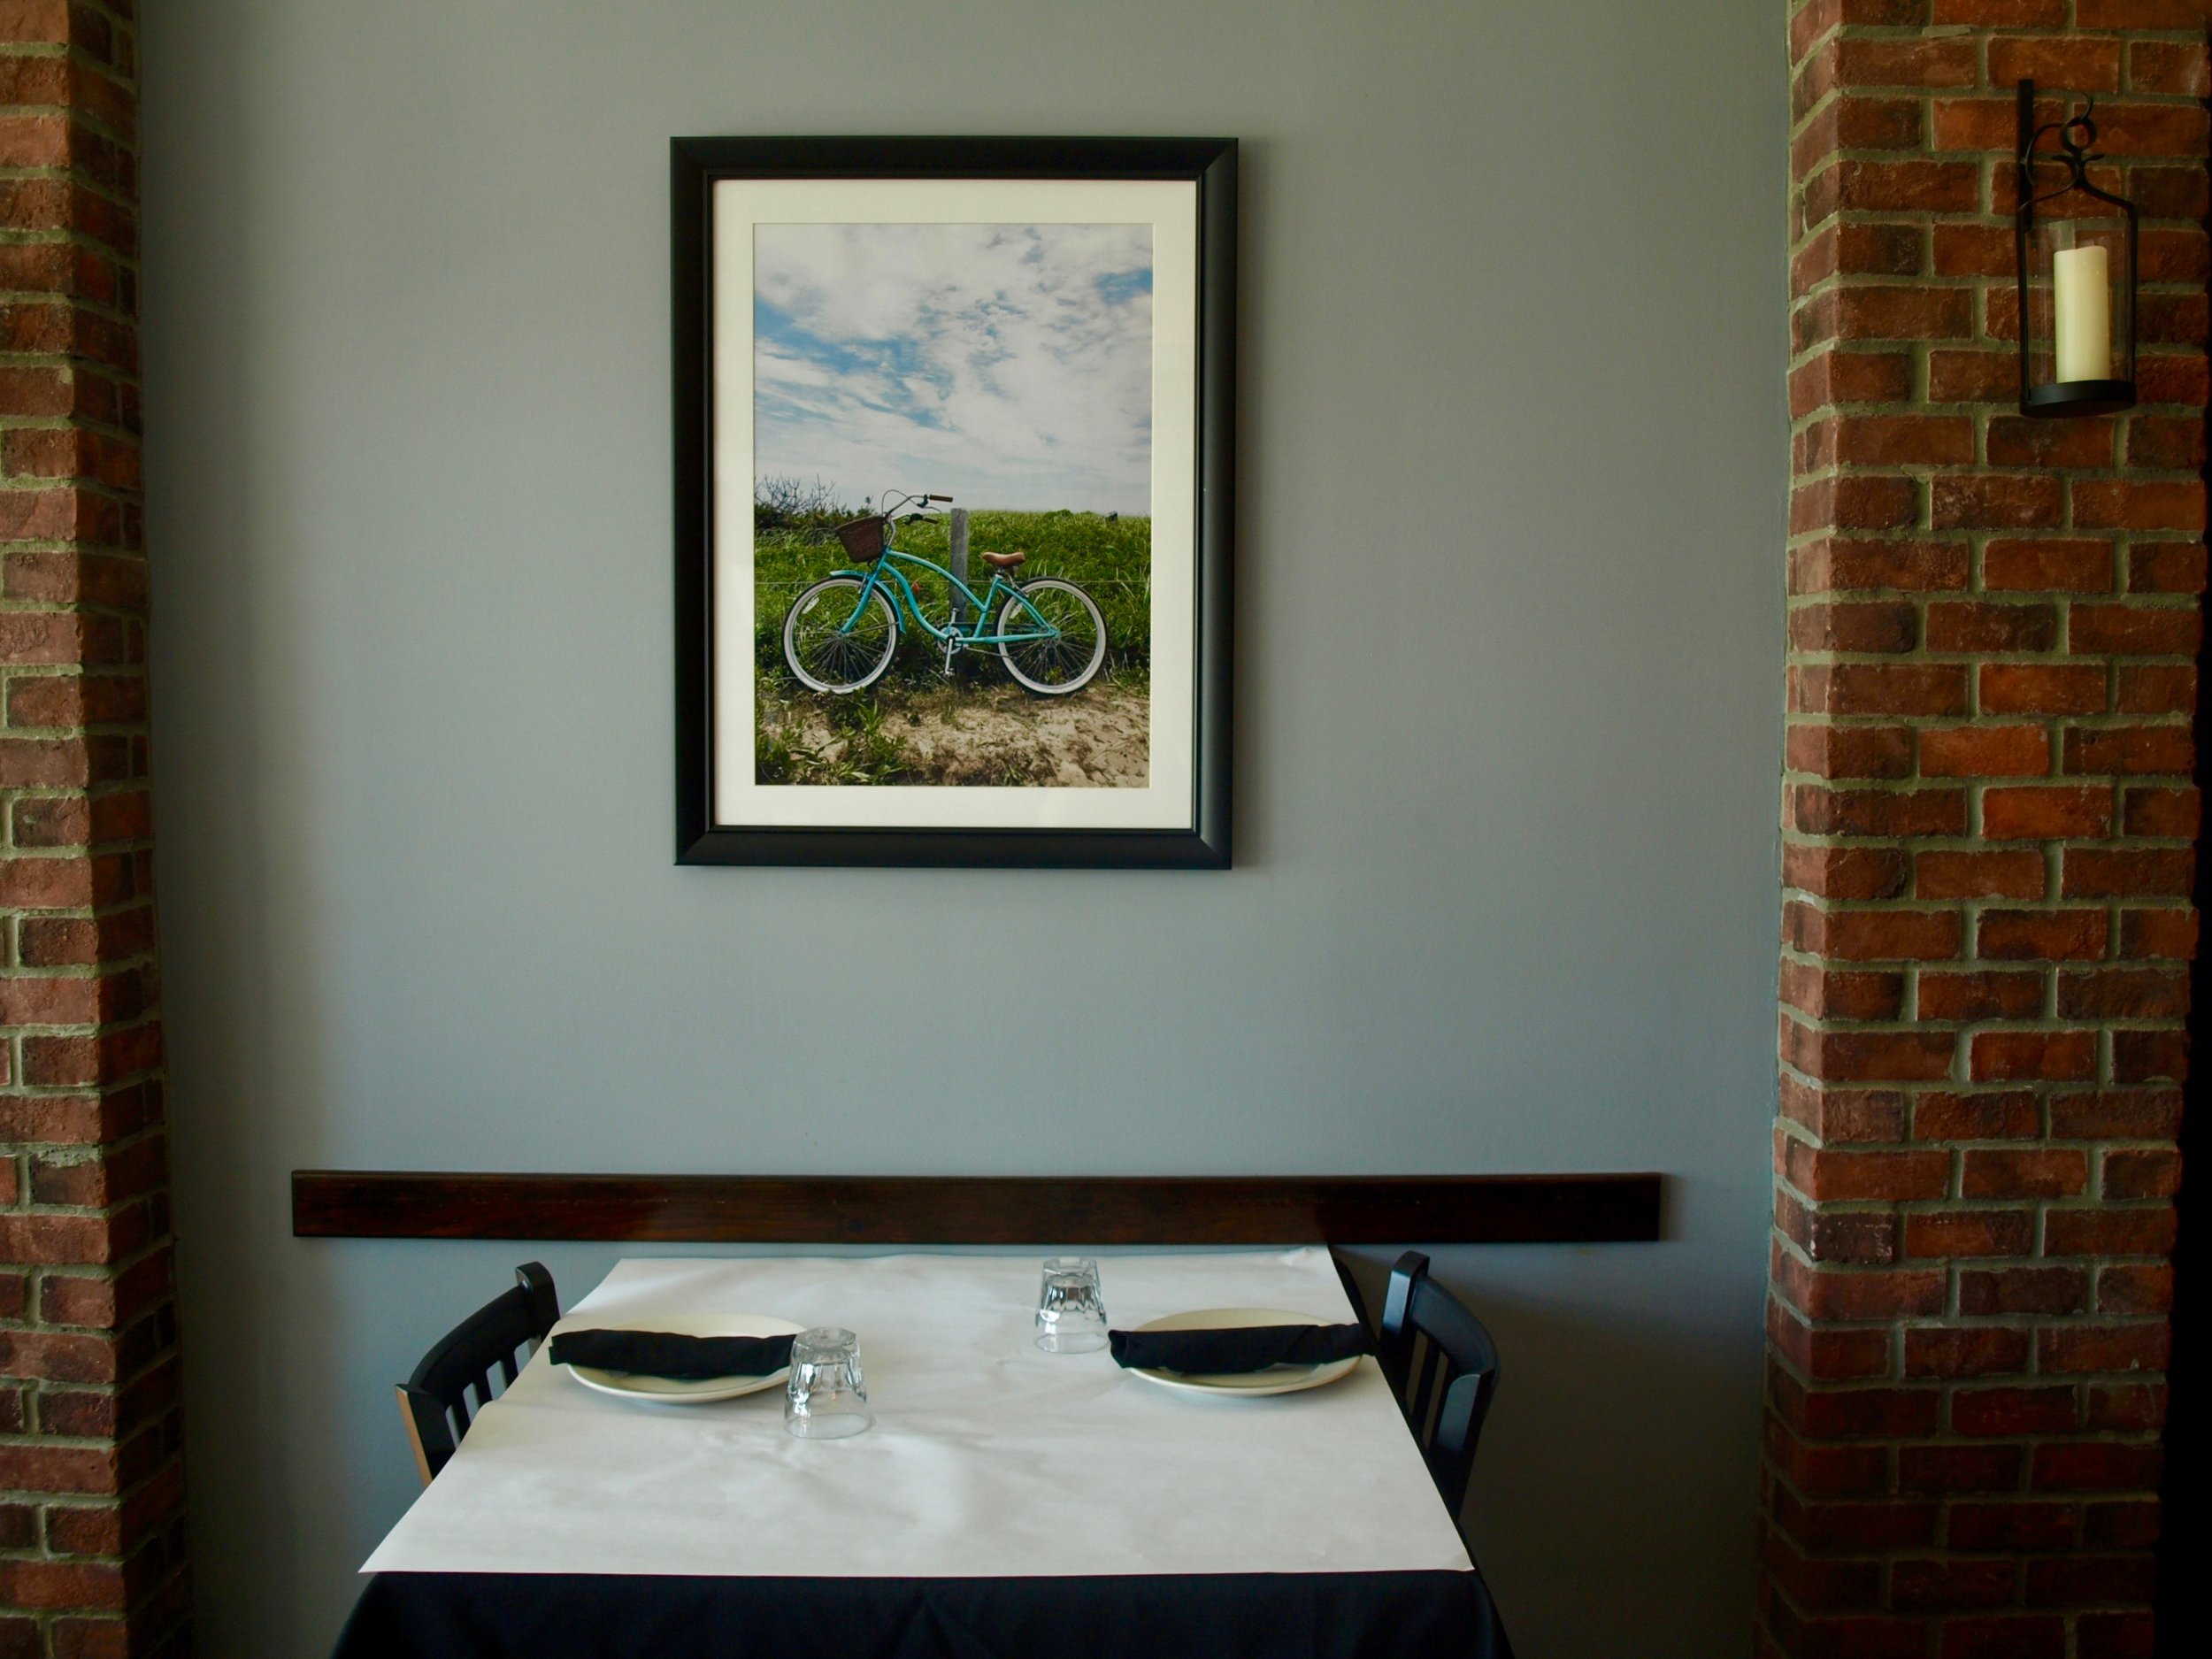 Eatalia's interior features photographs taken by a member of the Salese family.